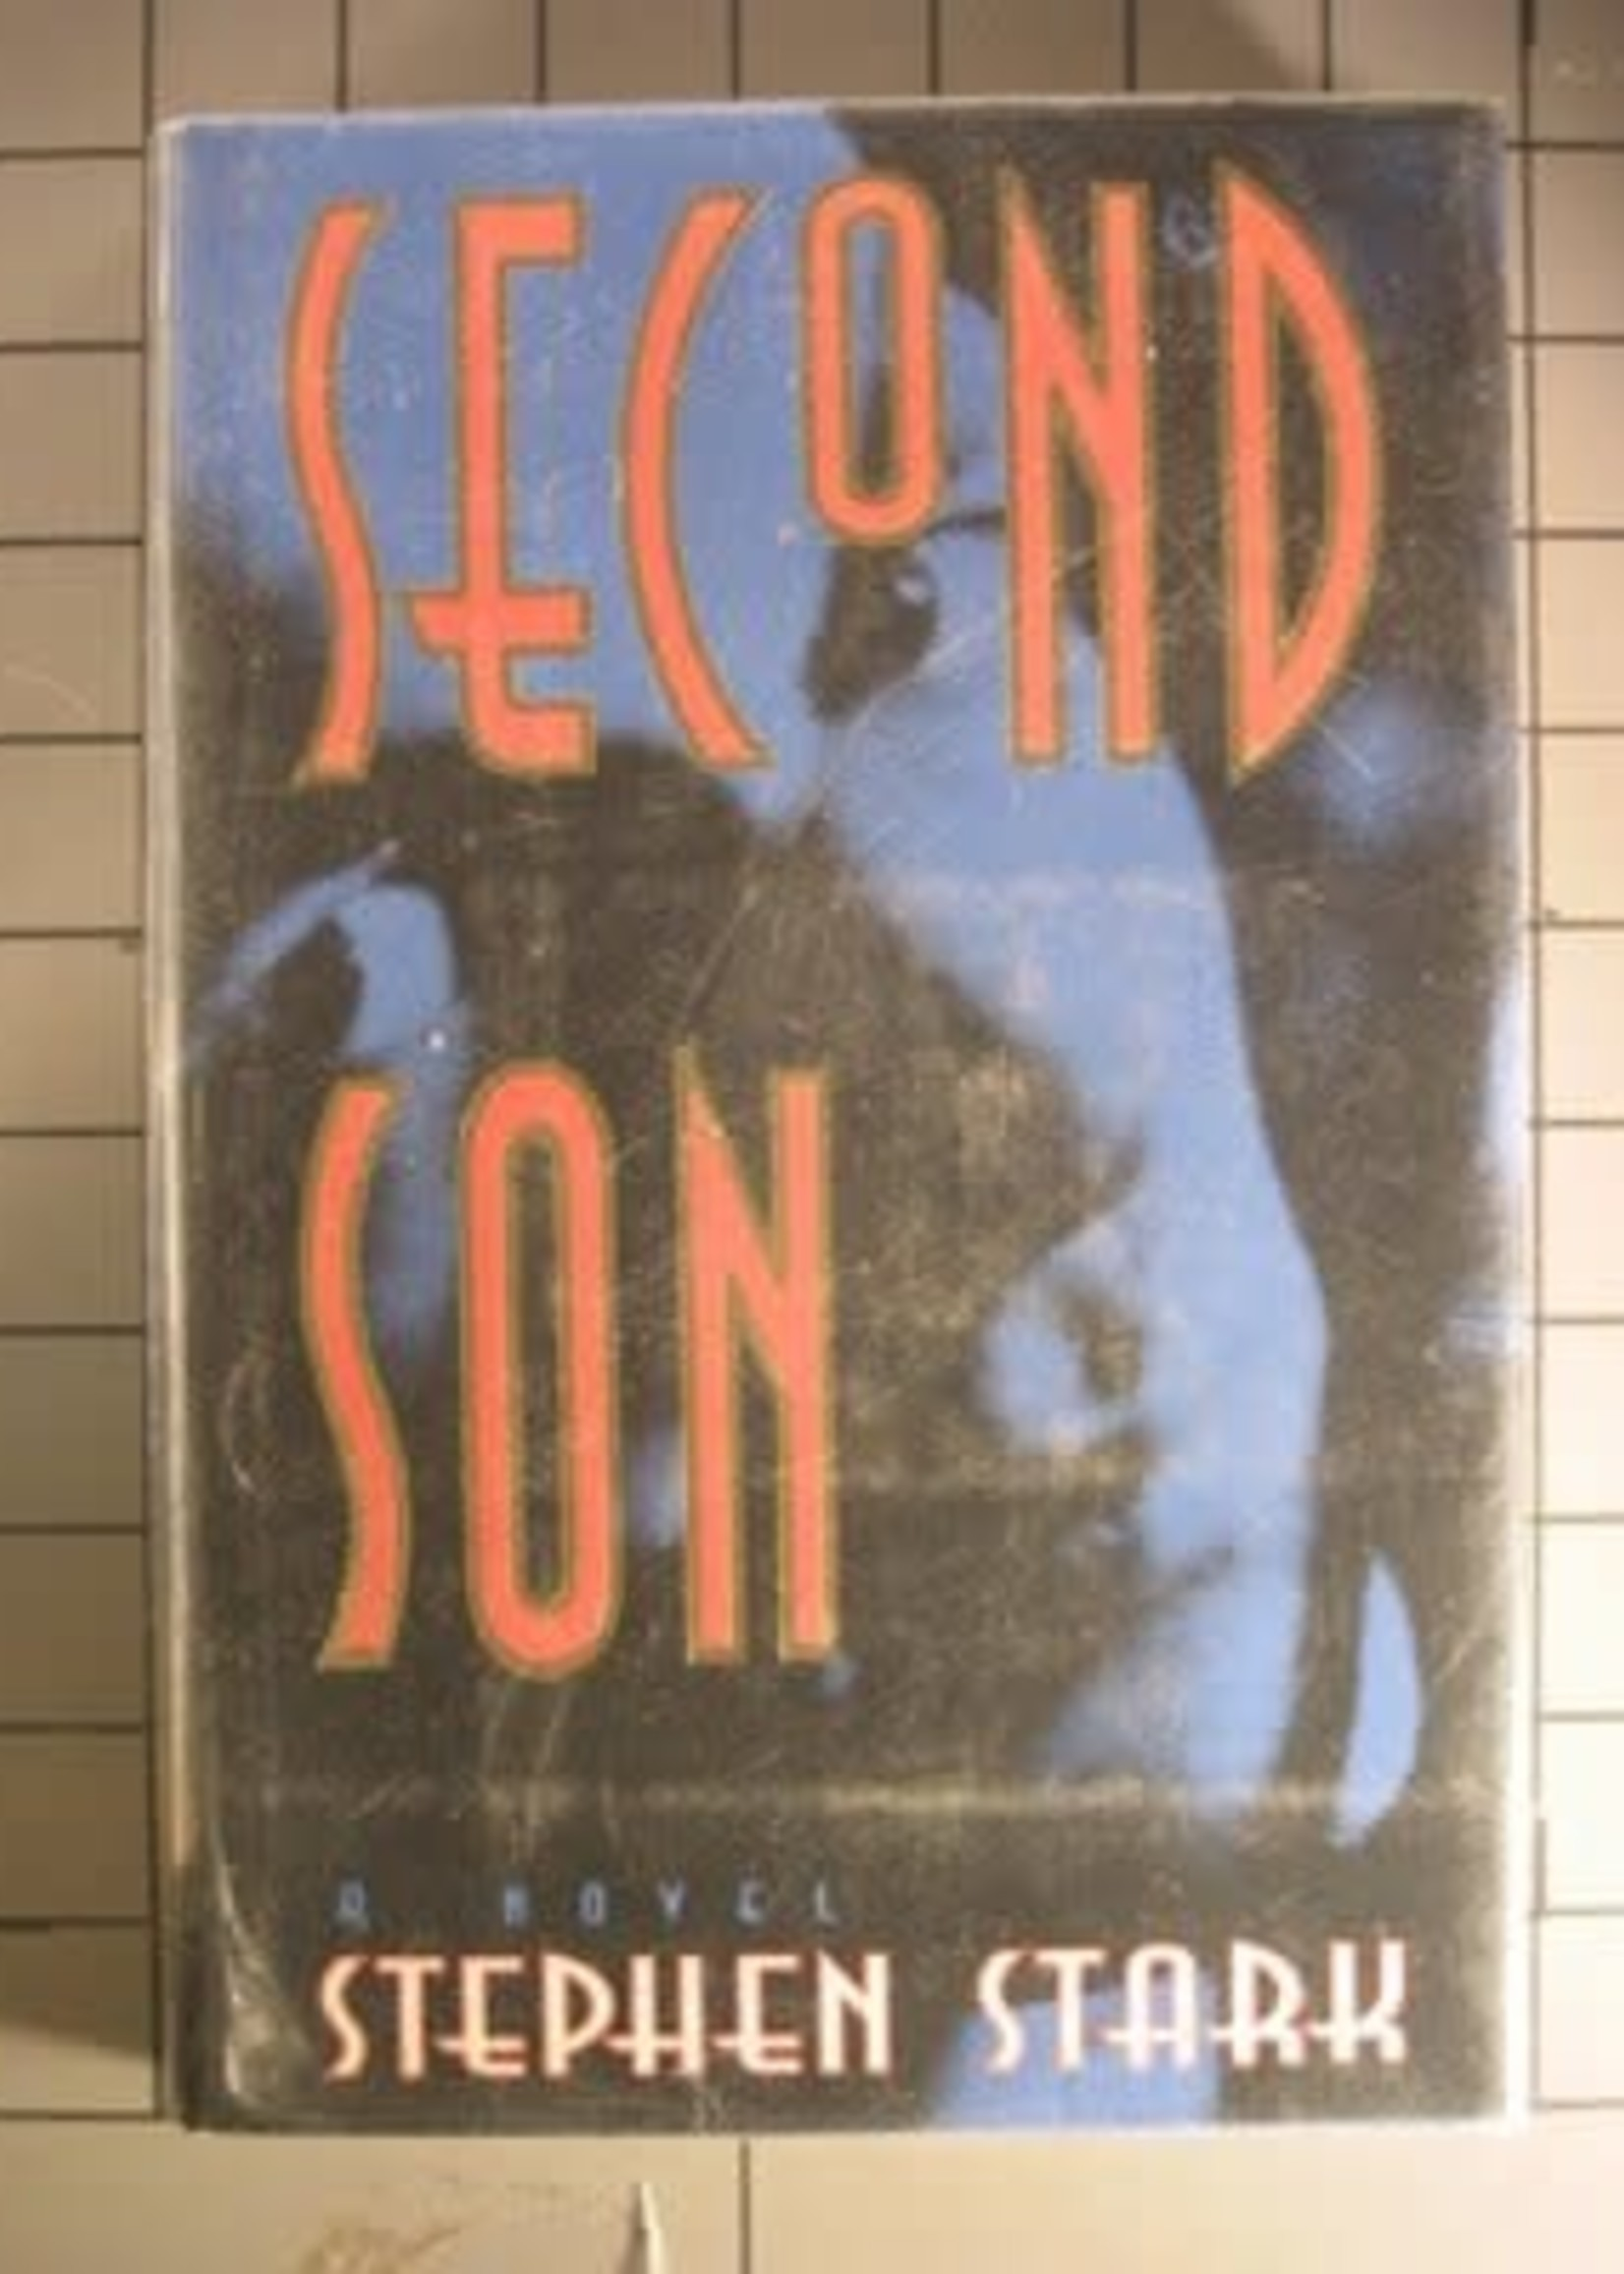 USED - Second Son by Stephen Stark